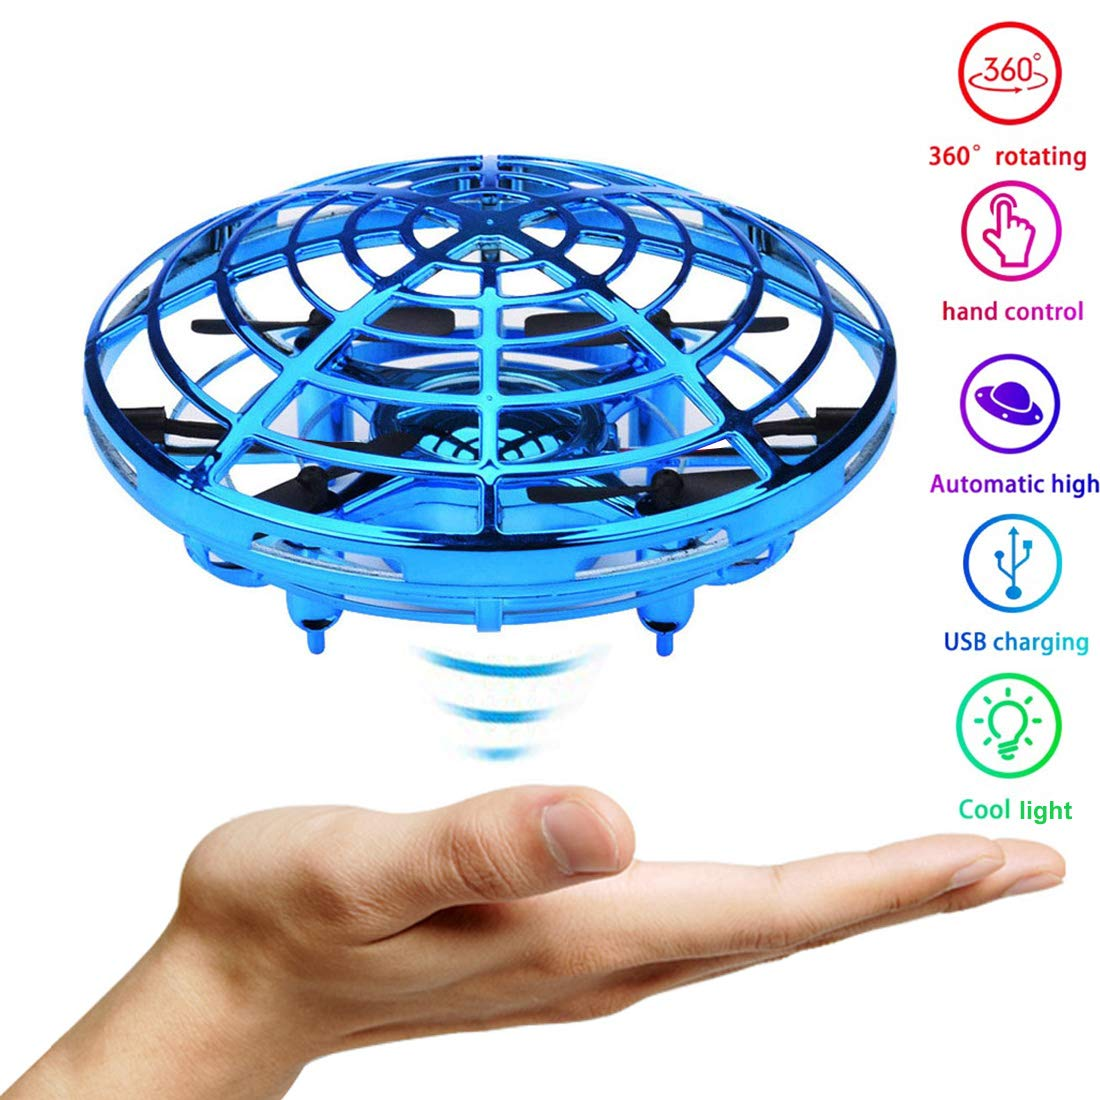 JTORD UFO Flying Toys for Kids Boys Hand-Controlled Flying Ball Interactive Infrared Induction Helicopter Ball 360° Rotating Shinning LED Lights Toys Gifts for Boys Girls Kids(Blue) by JTORD